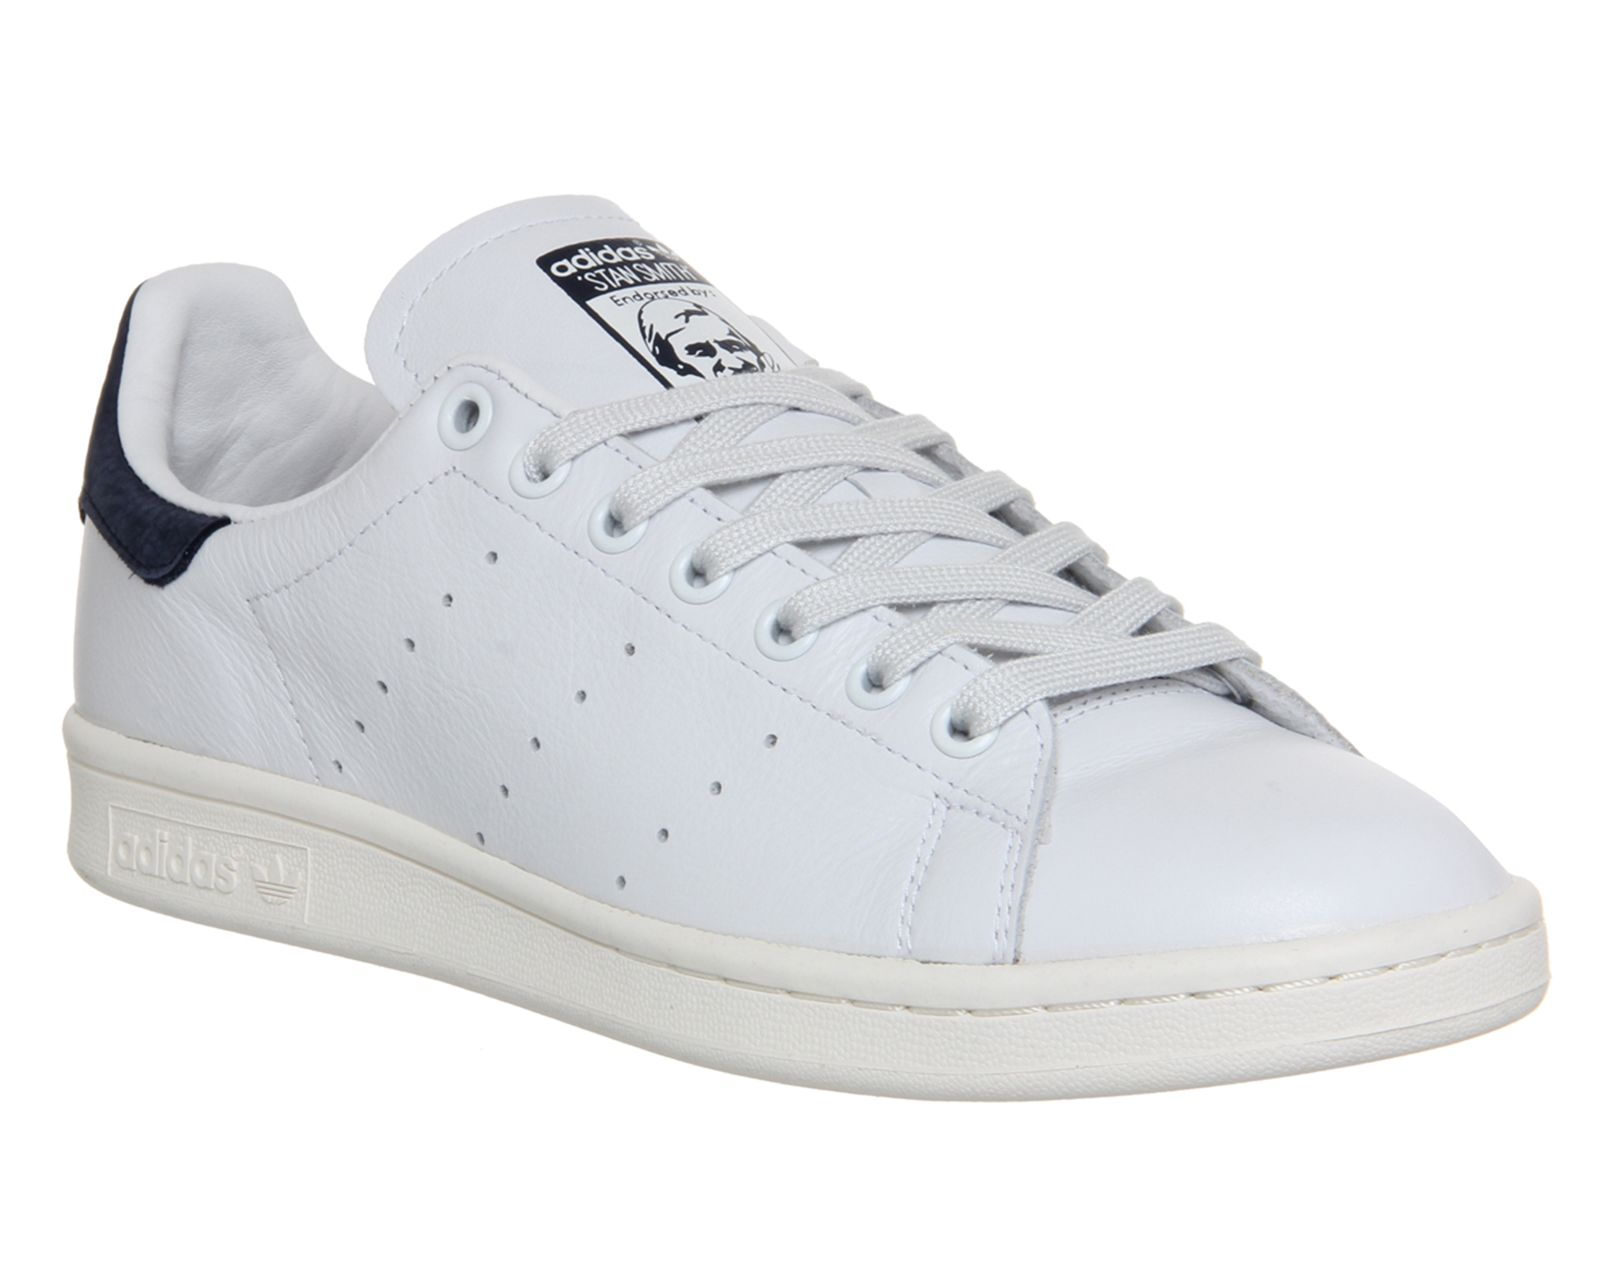 buy popular ba223 edeb5 Adidas Stan Smith Neo White Cobalt Blue - Unisex Sports ...